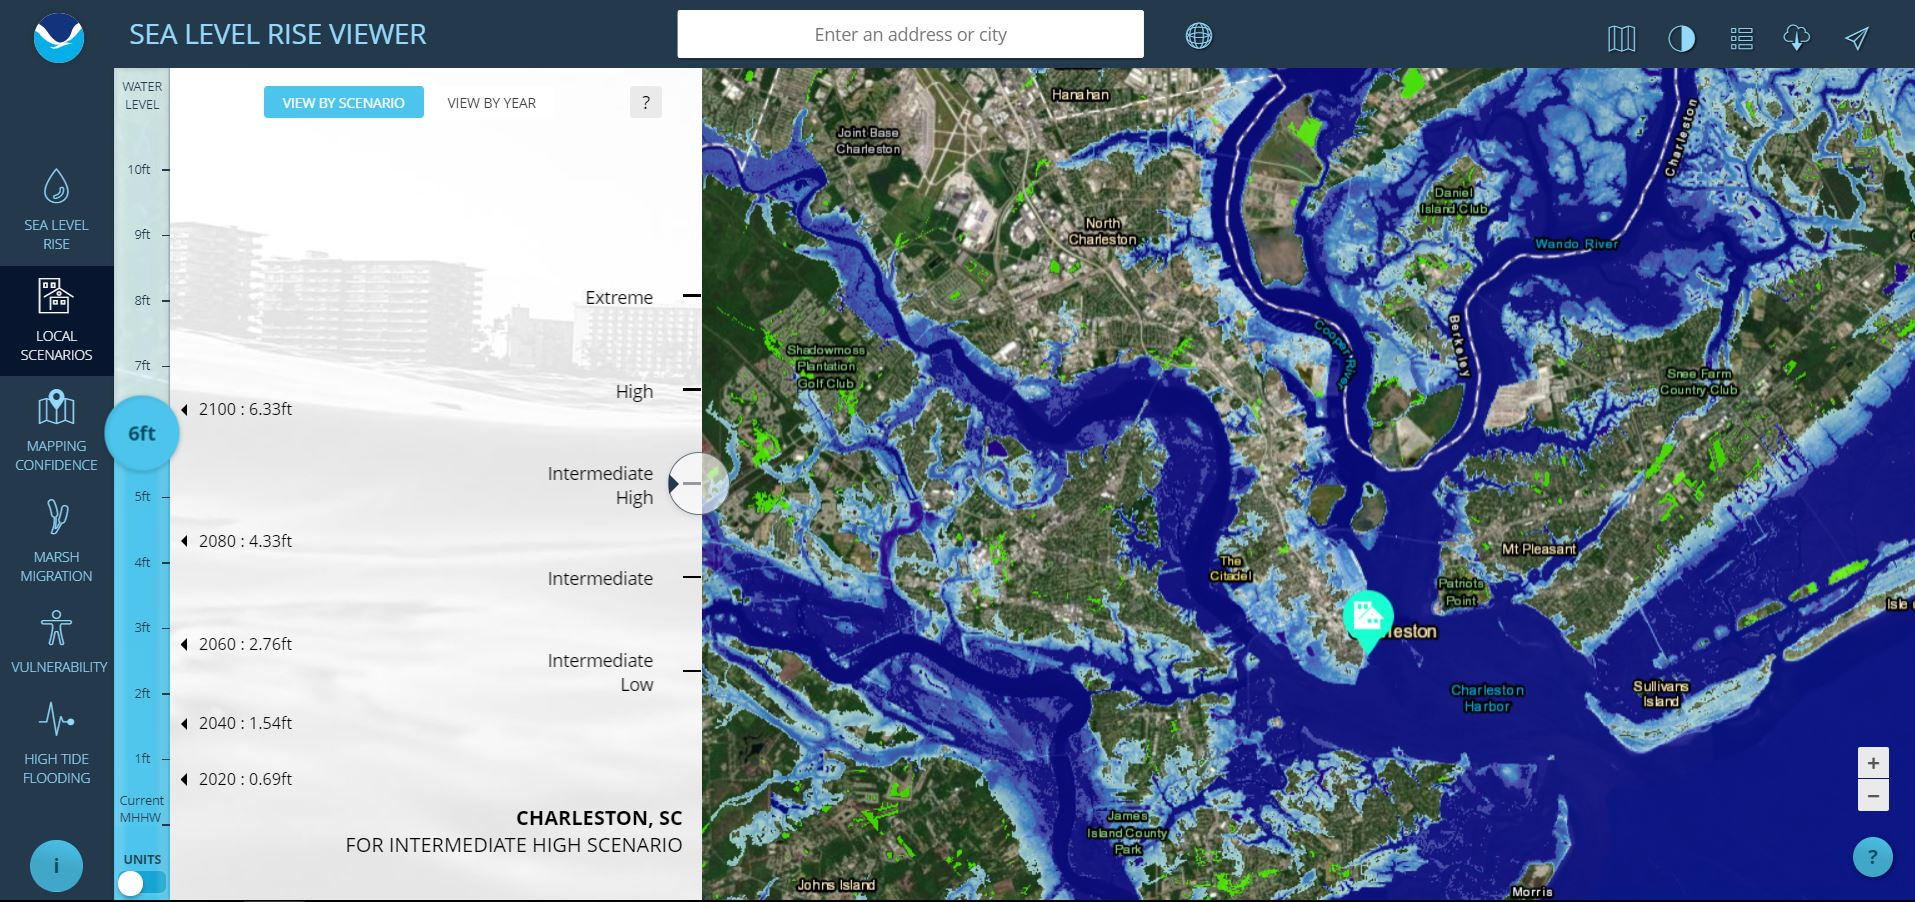 Sea Level Rise Viewer - Rising oceans map